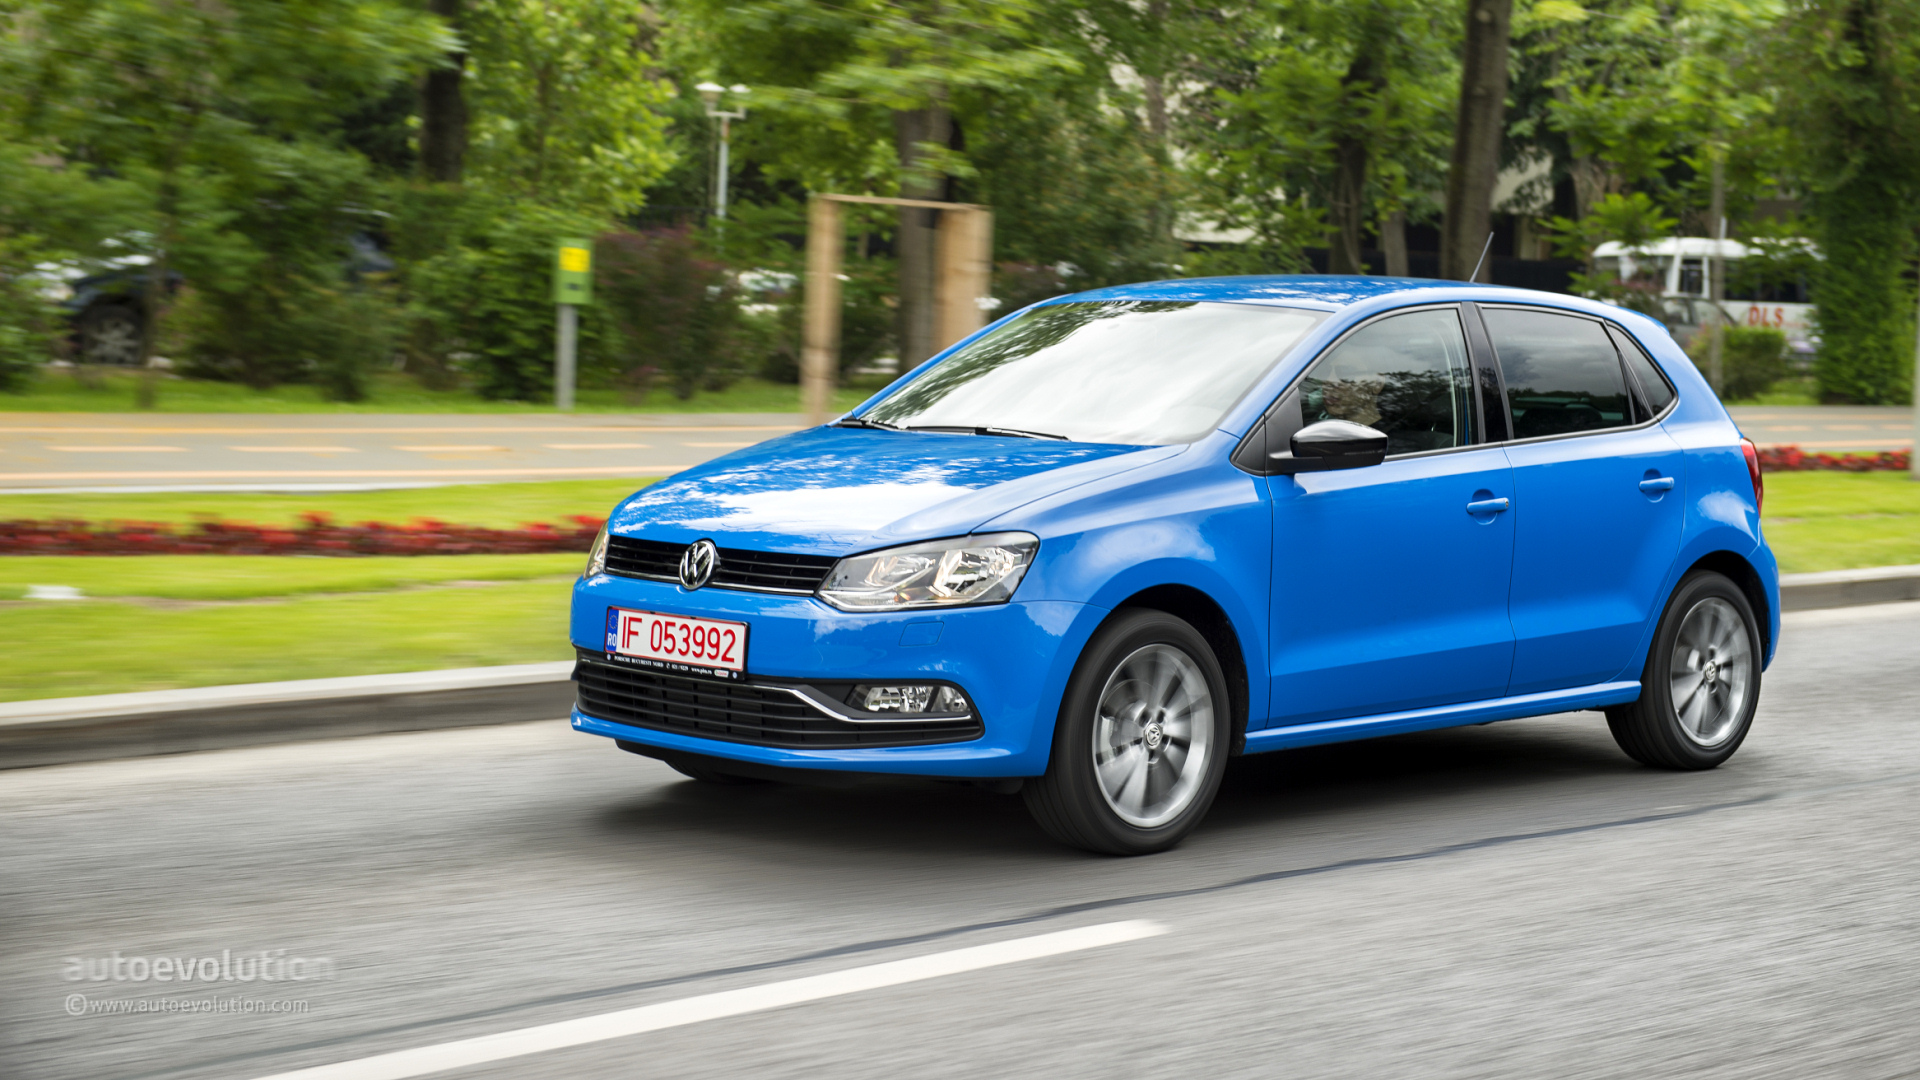 2014 volkswagen polo 1 2 tsi first drive autoevolution. Black Bedroom Furniture Sets. Home Design Ideas